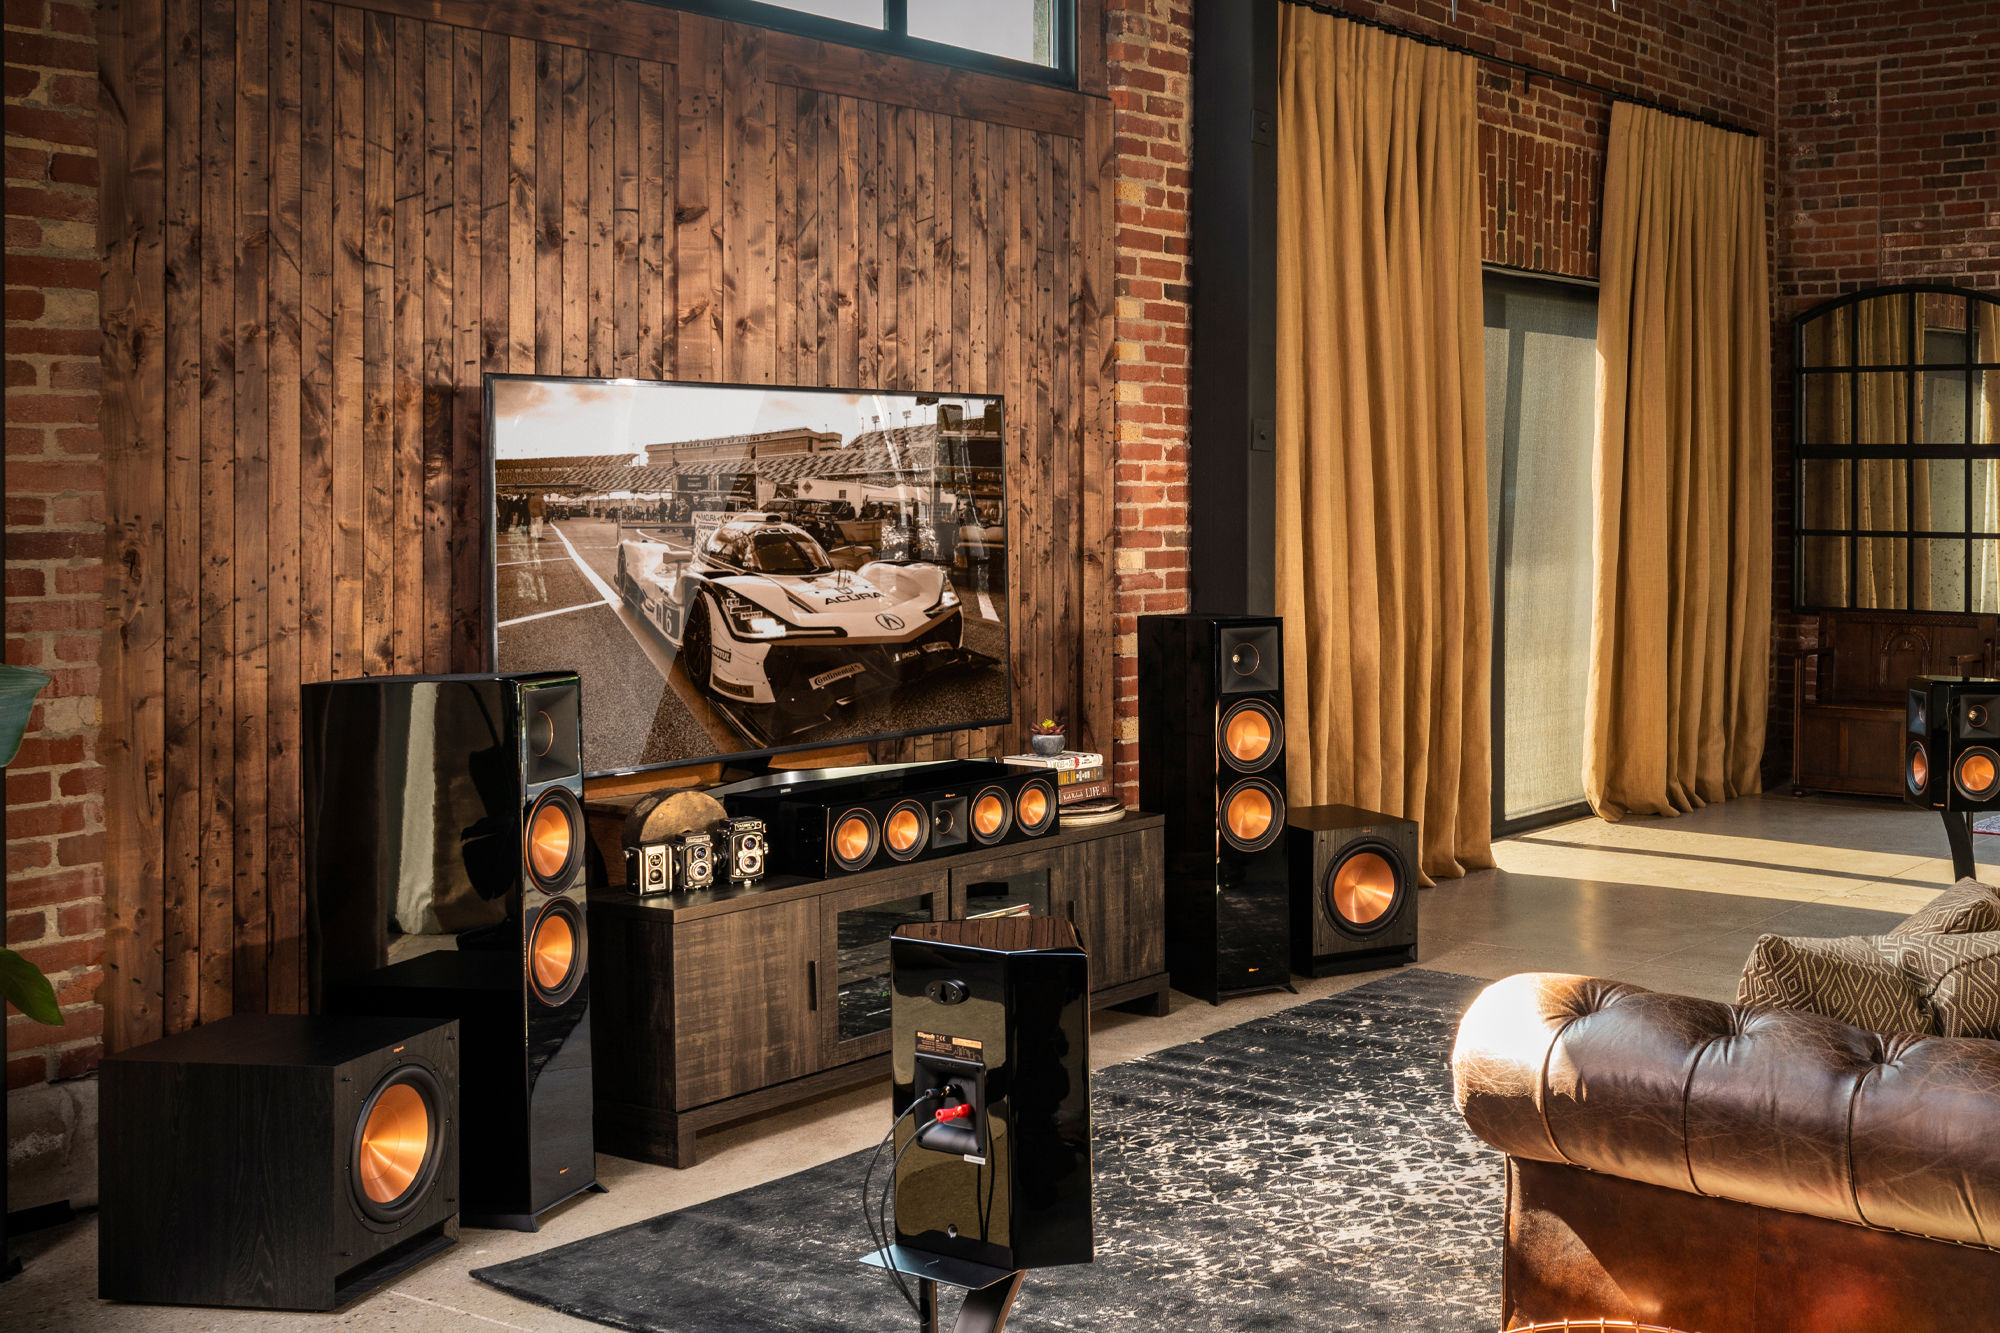 Surround sound system in a living room